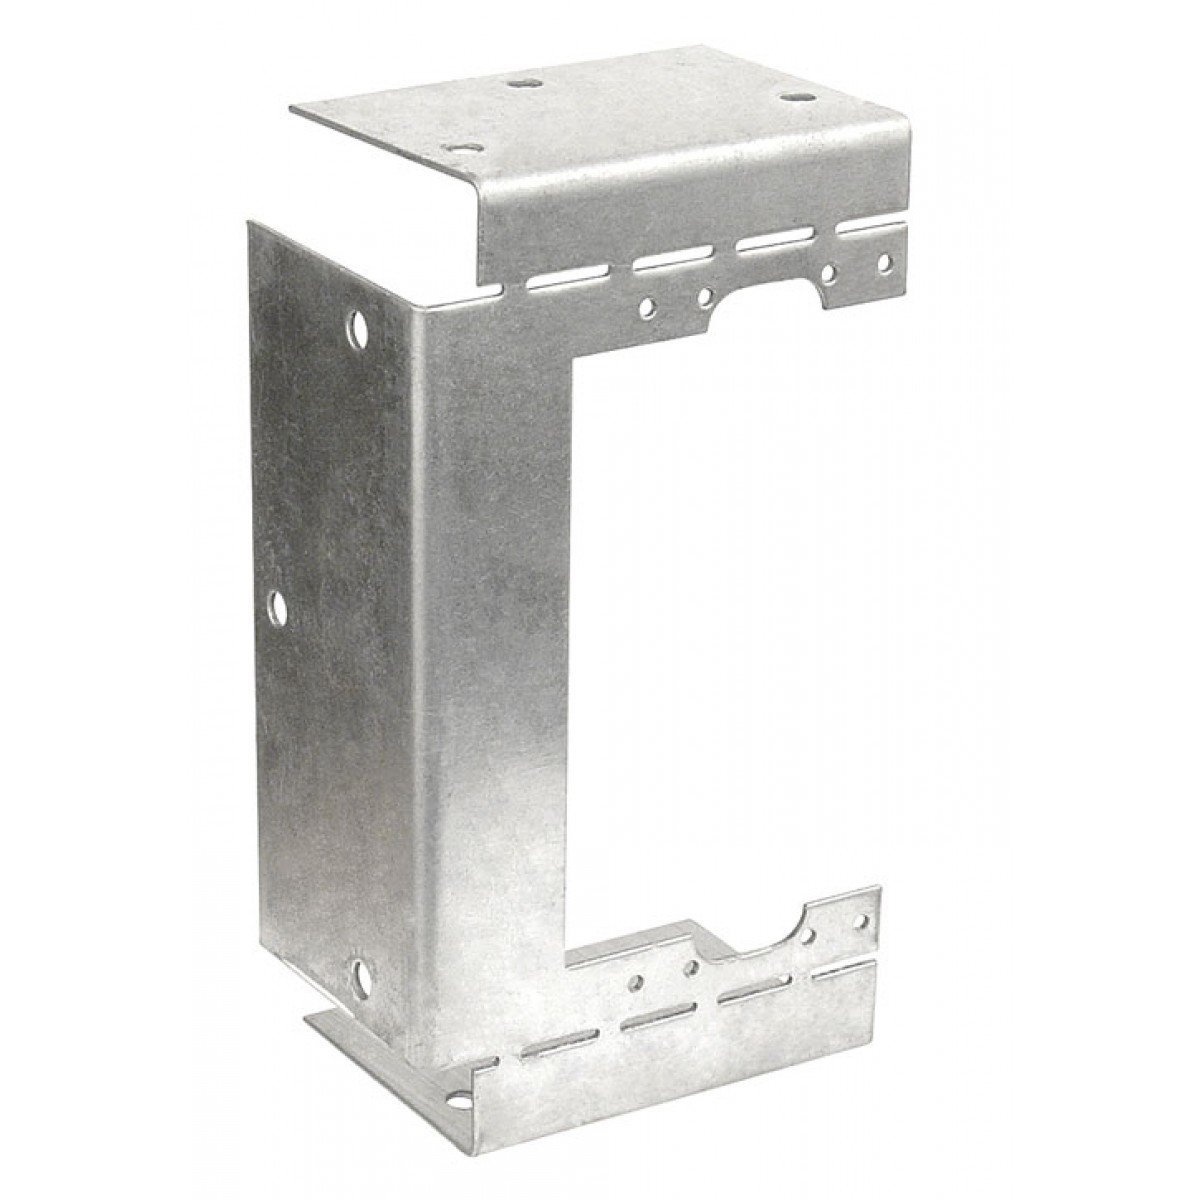 5 Pcs, Drop Ceiling Grid Switch Box Mounting Bracket, Galvanized Steel Provide Power On Ceiling for Decorative Lights, Tvs, Media Boxes